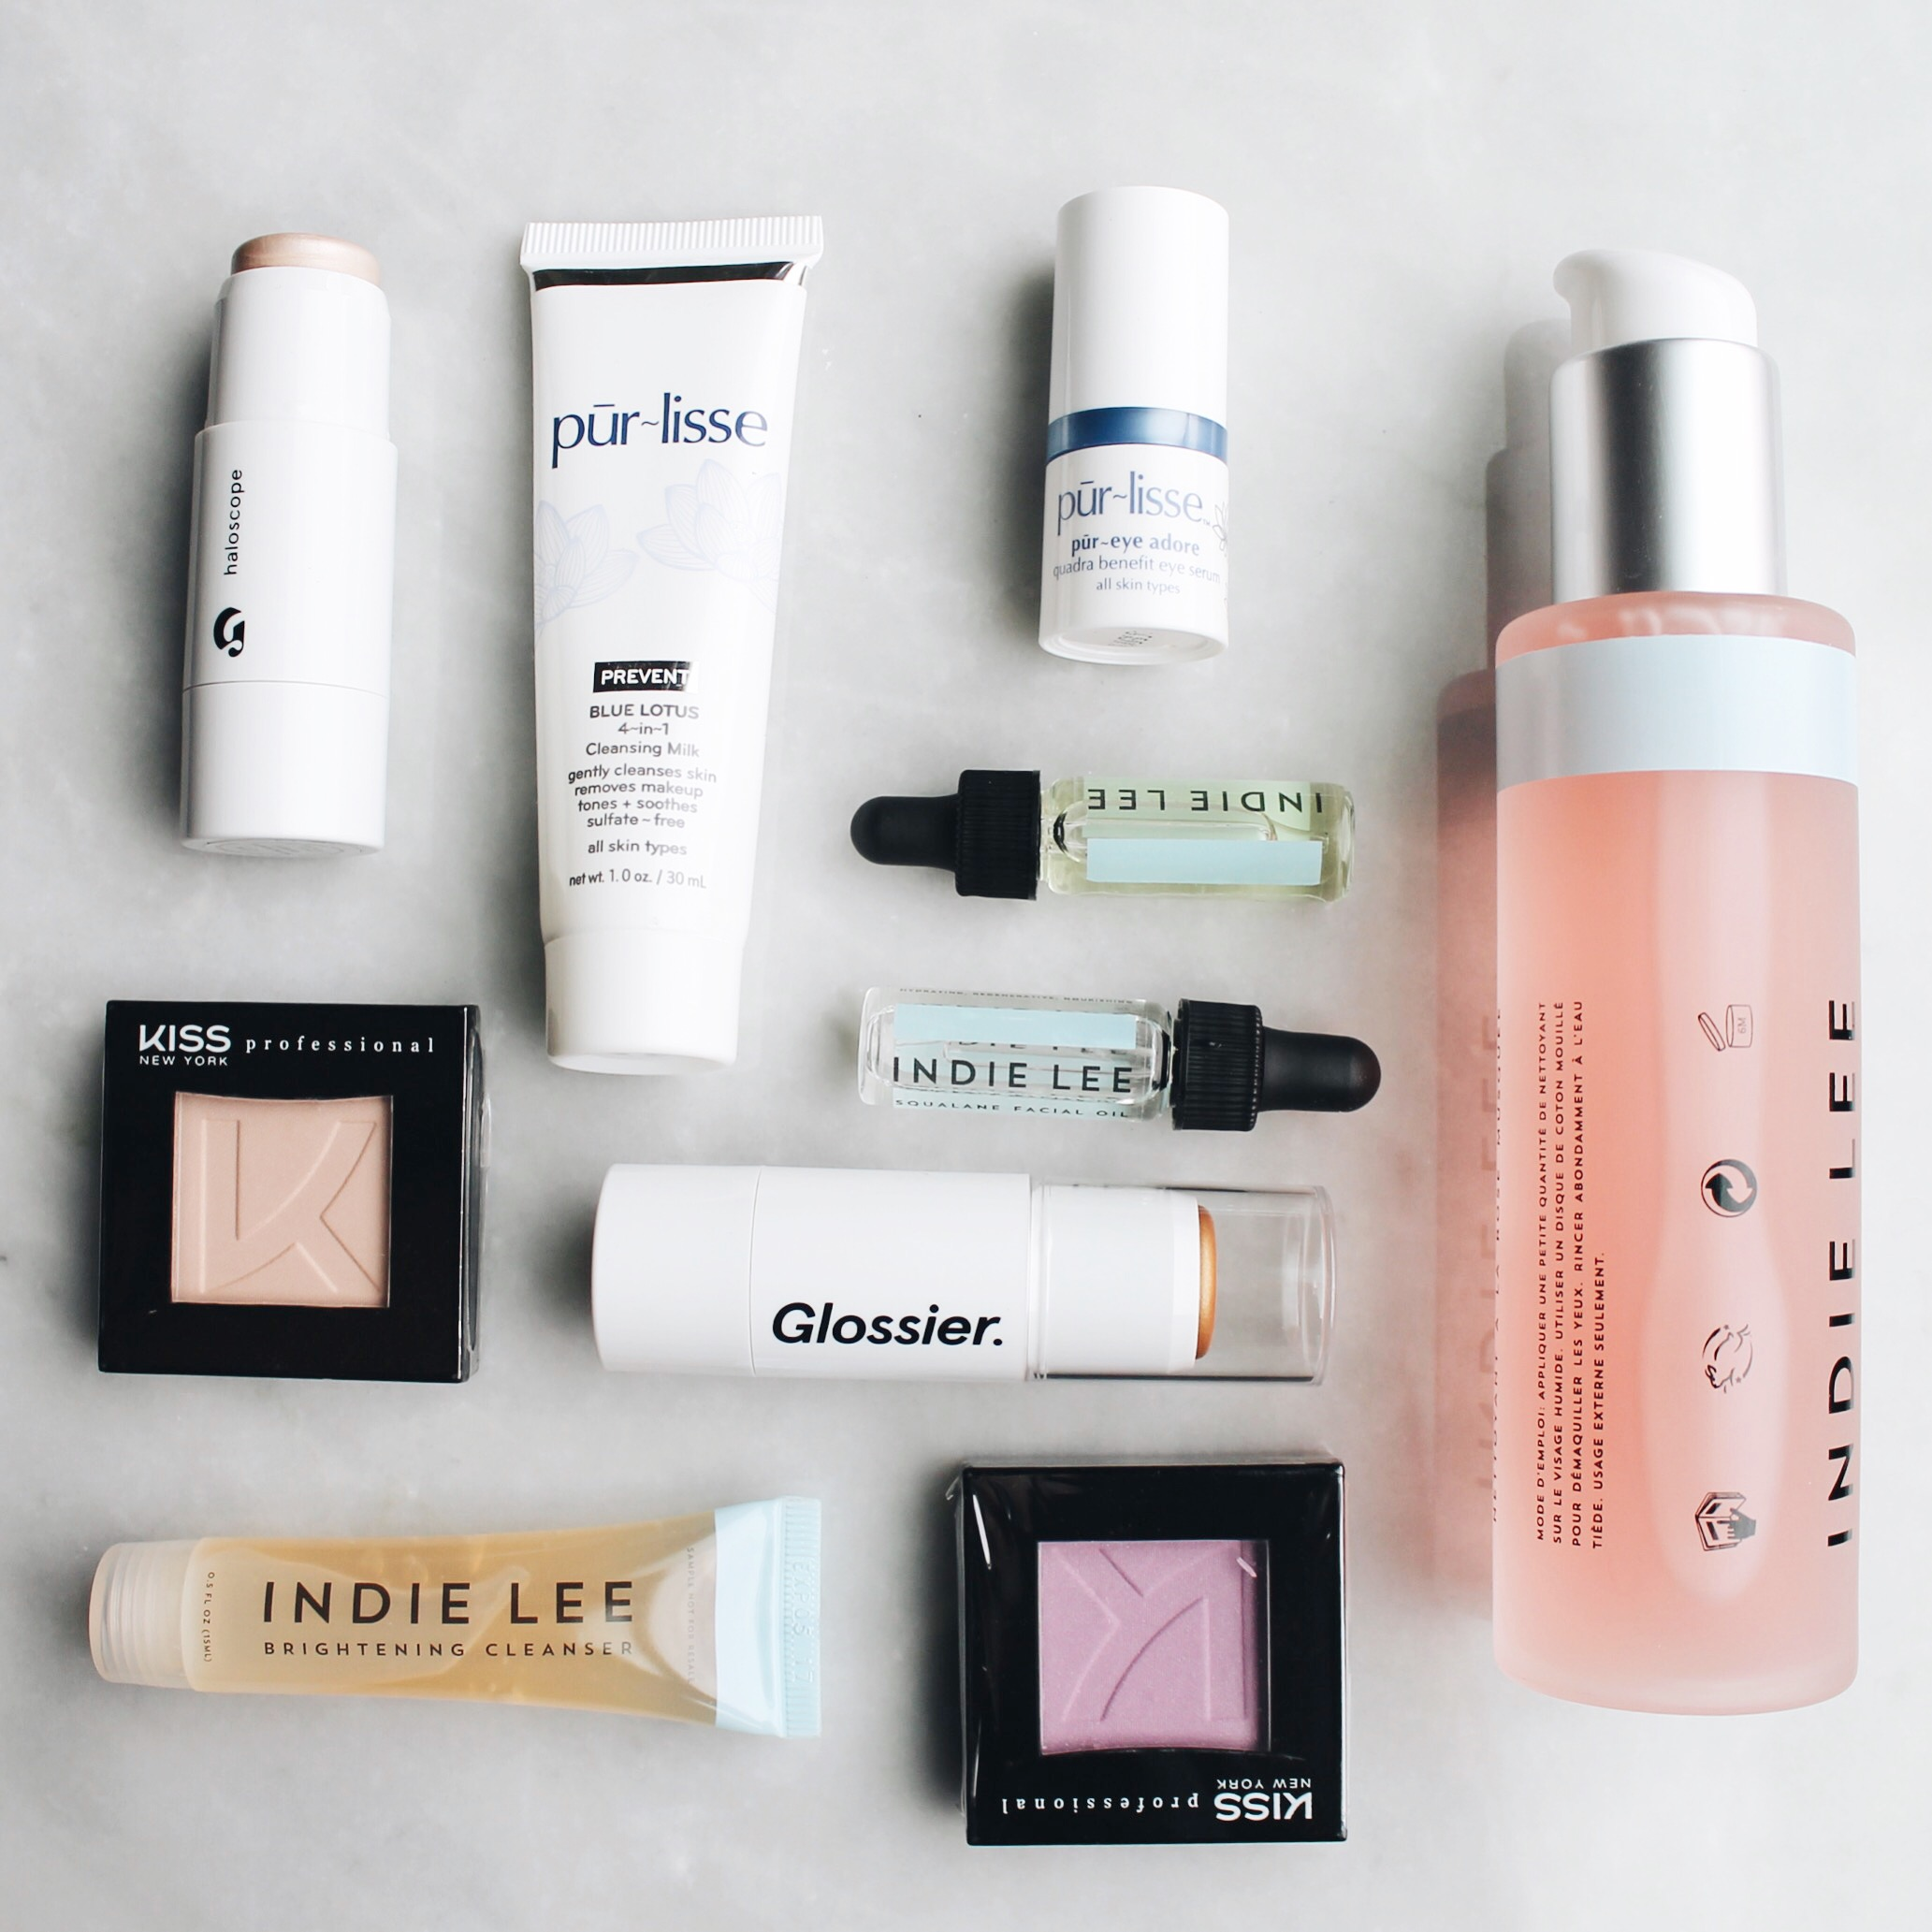 Unboxing My Packages, Glossier, Haloscope, Indie Lee, Kiss Professional, Purlisse, The Stell New York